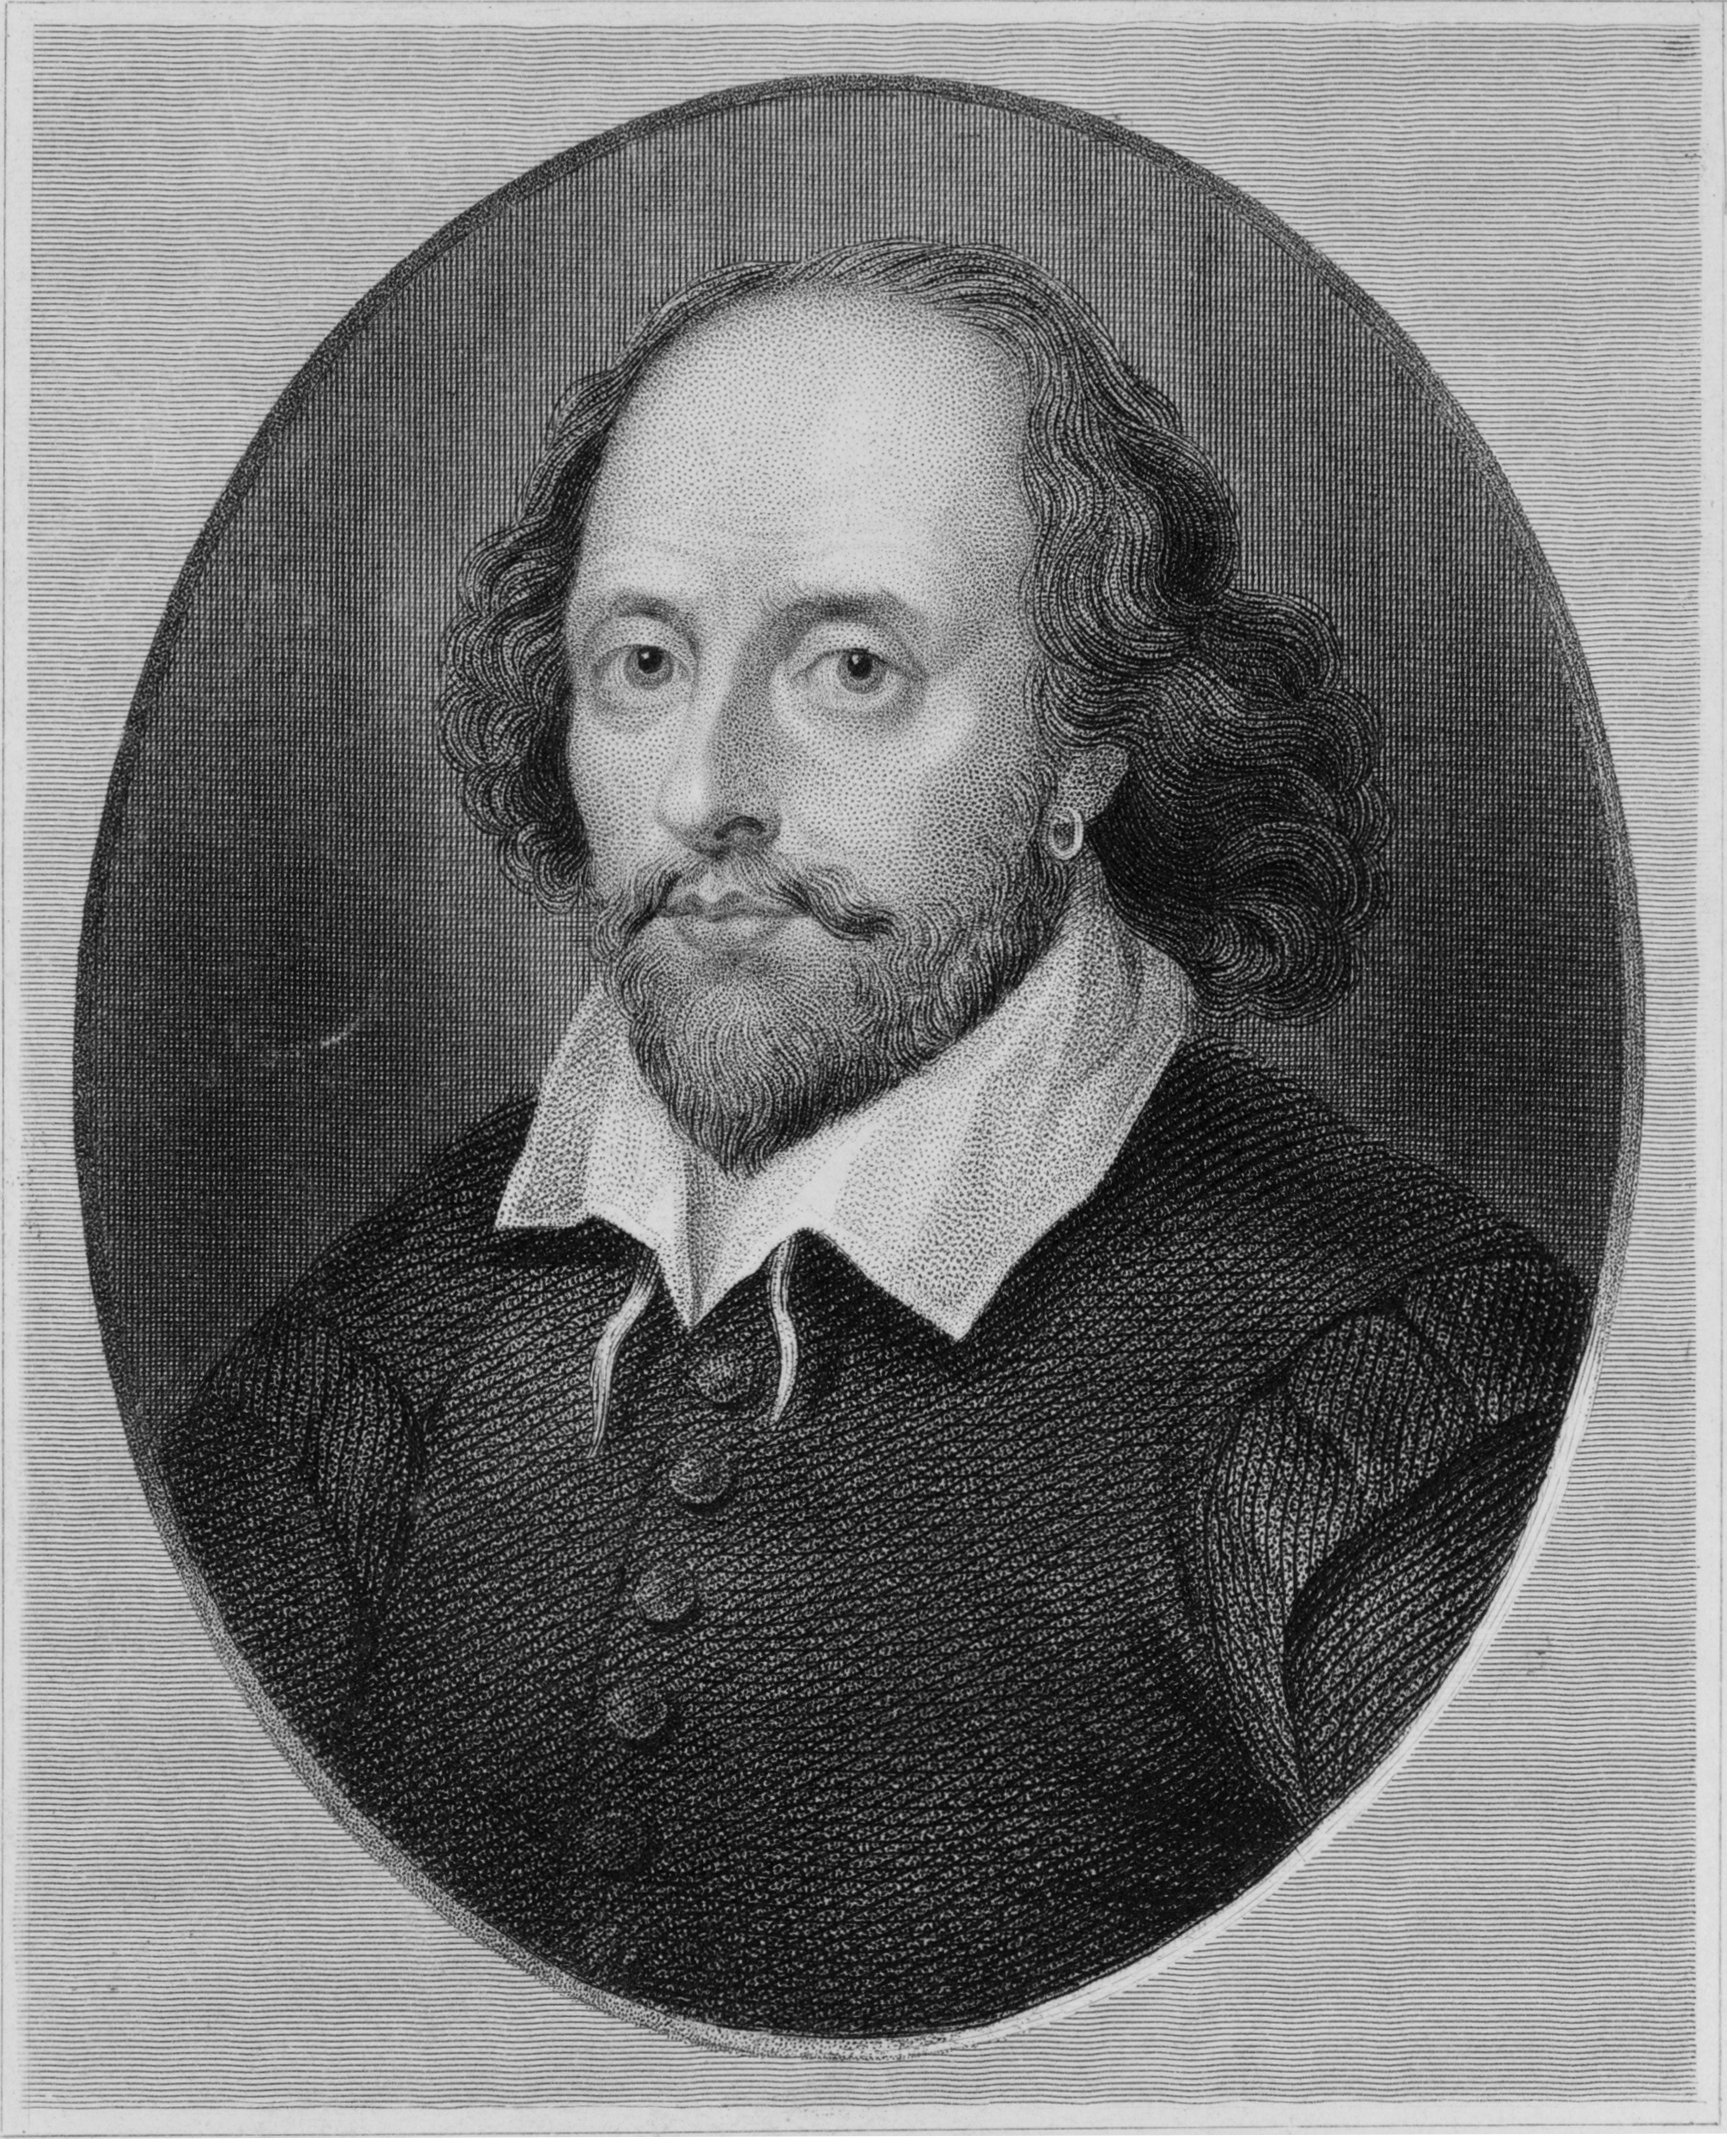 a history of william shakespeare The shakespeare histories share a number of common features, many of which are blunter than the same features in his comedies and tragedies.